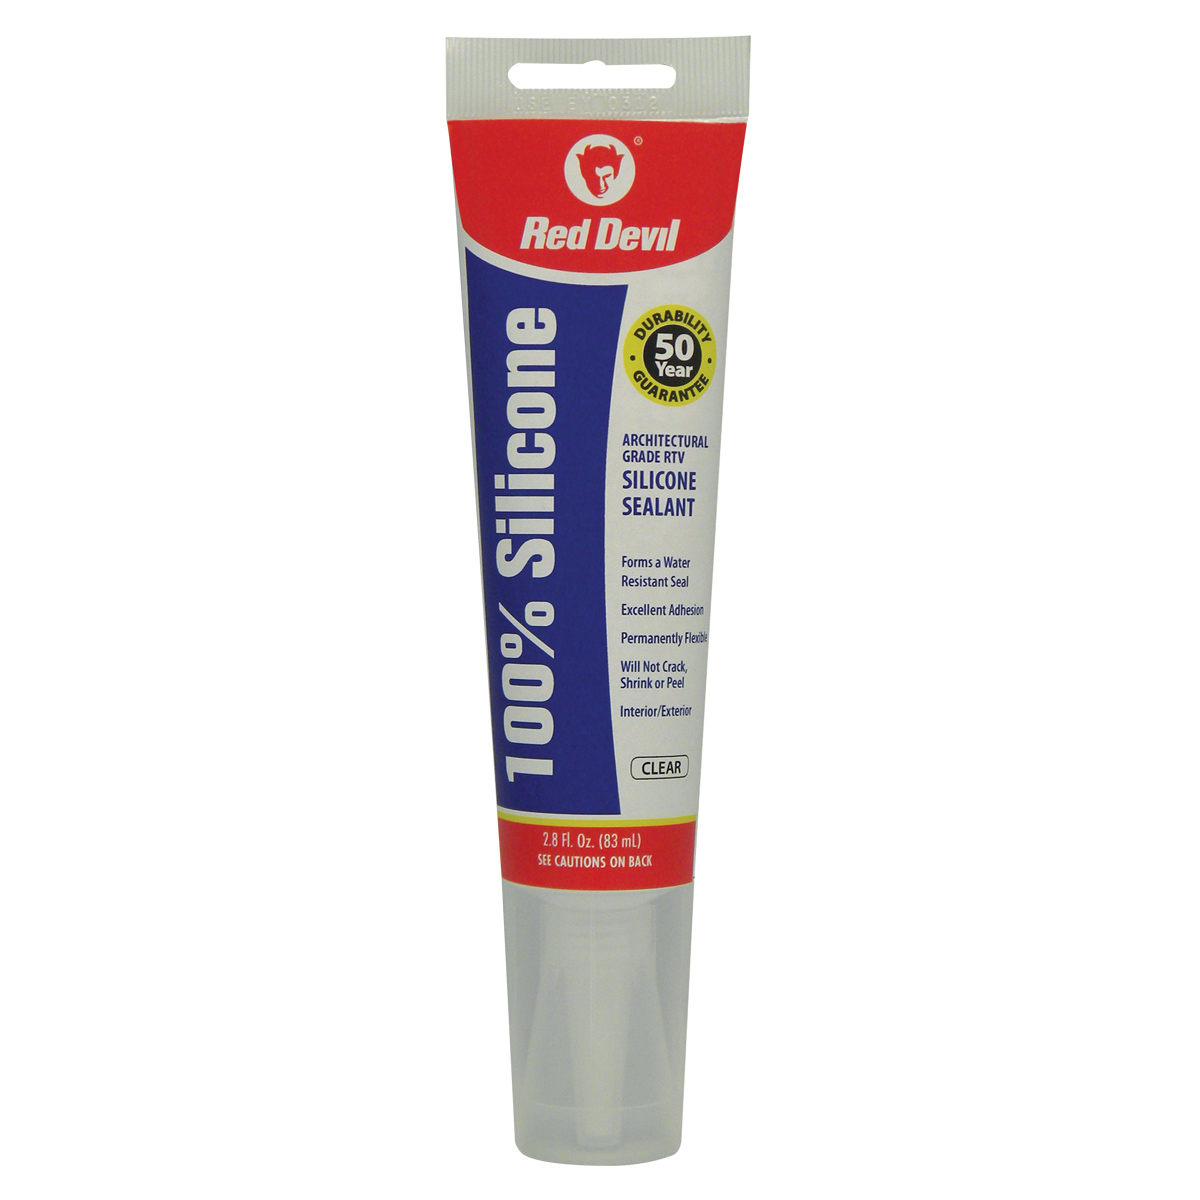 100% Silicone Sealant, Clear